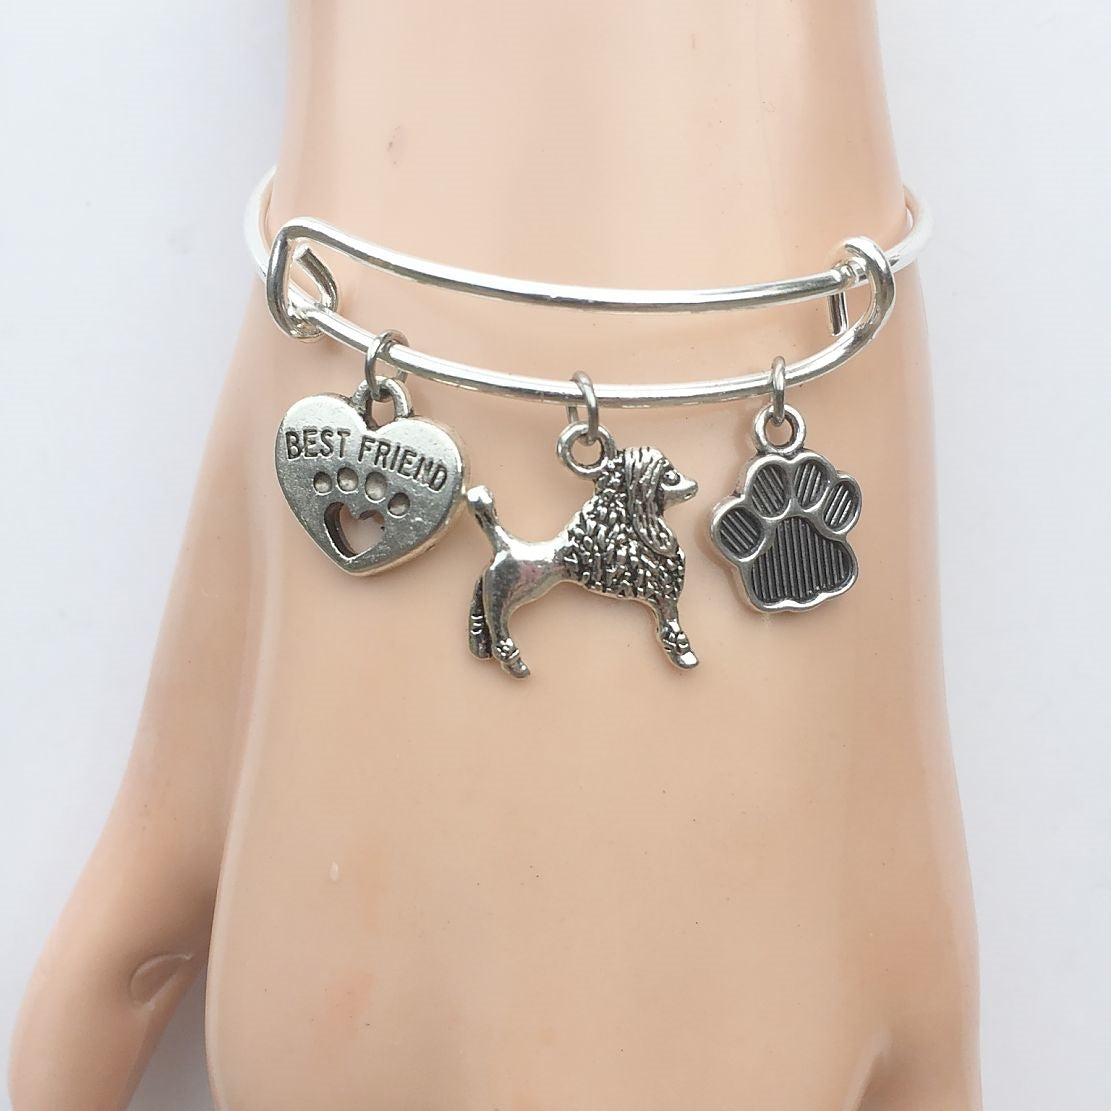 Poodle My Best friend Adjustable Charms Silver Bangle Bracelet.